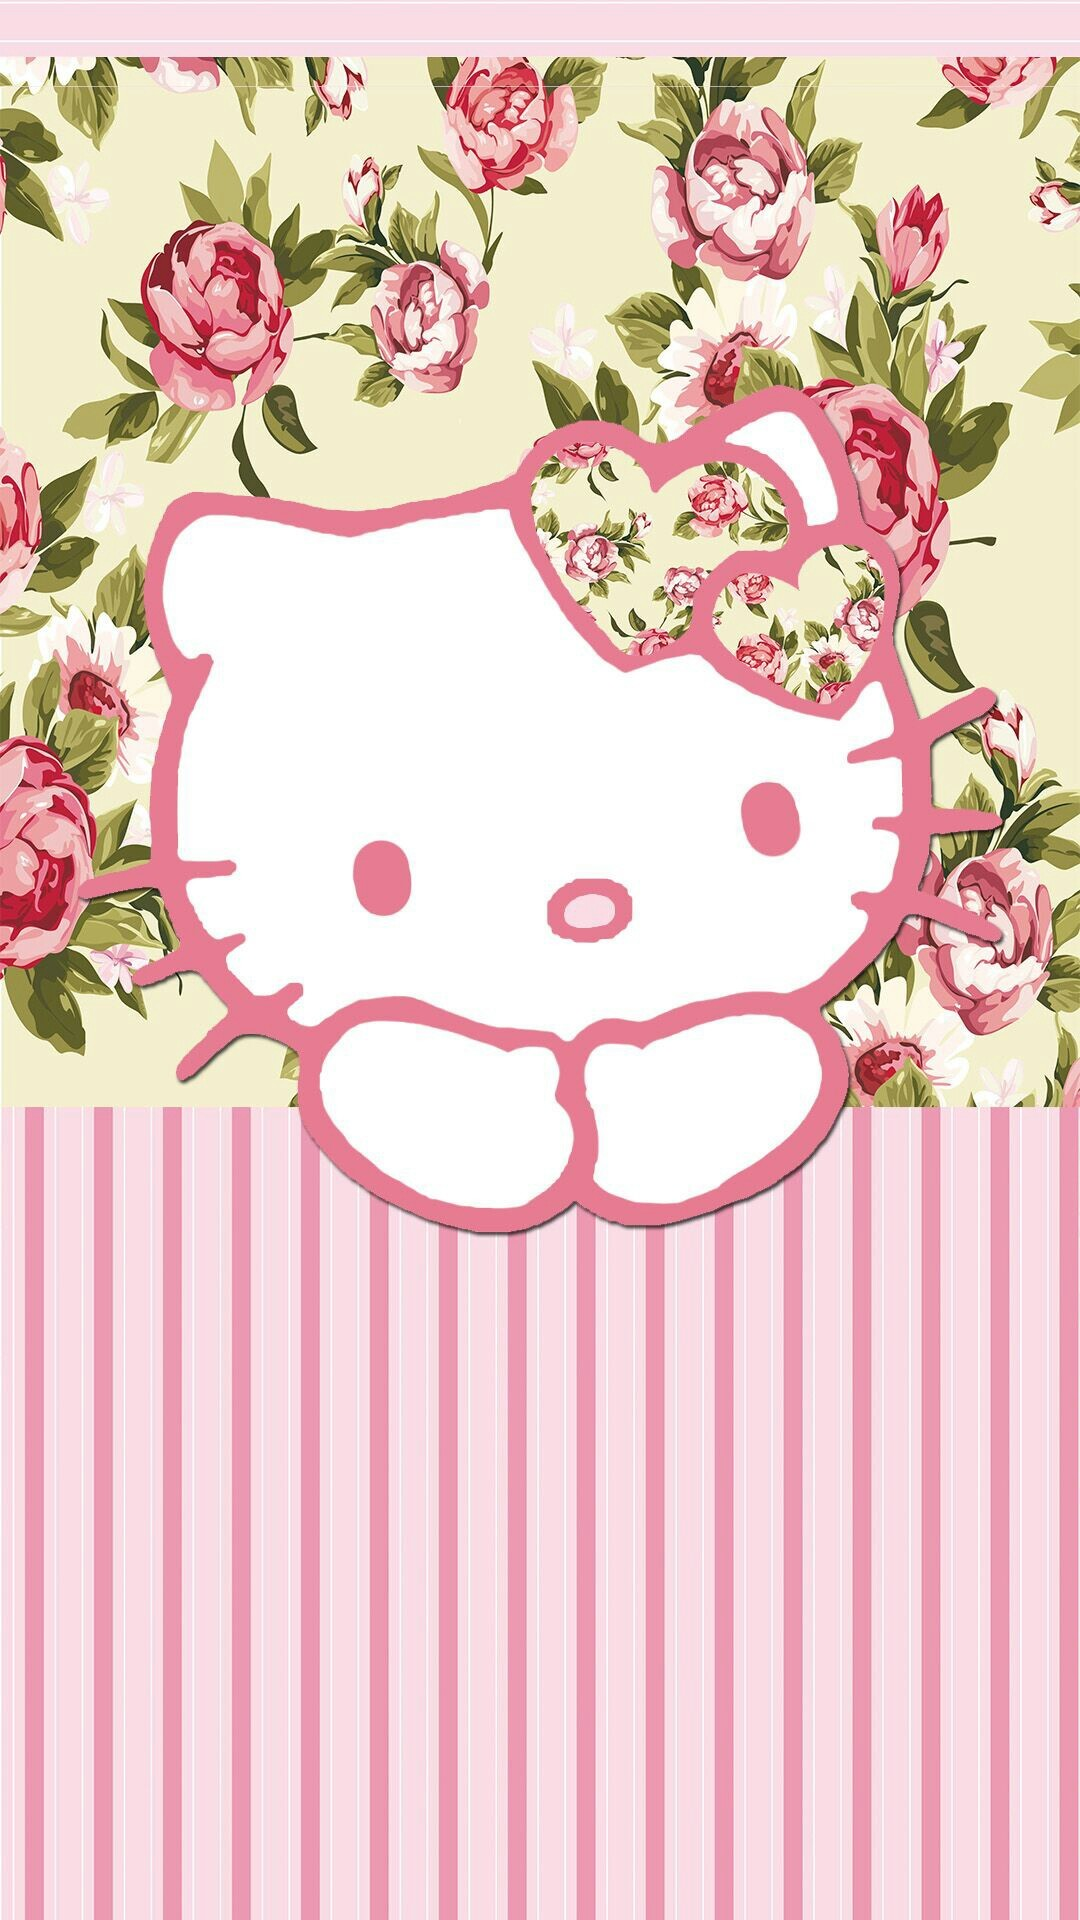 Hello Kitty Desktop Background Wallpapers 61 images 1080x1920